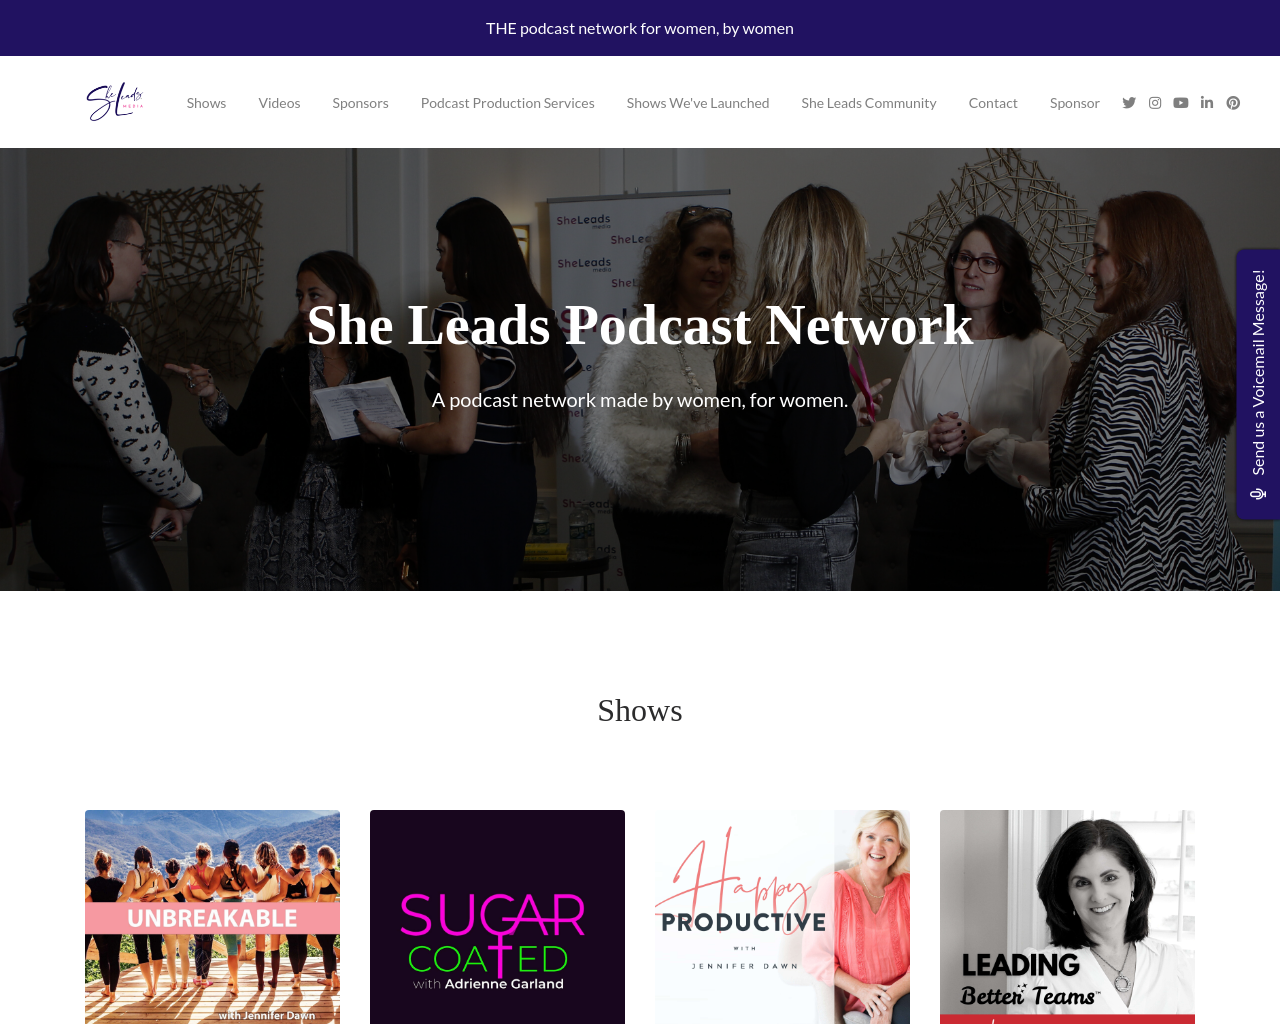 She Leads Podcast Network Website